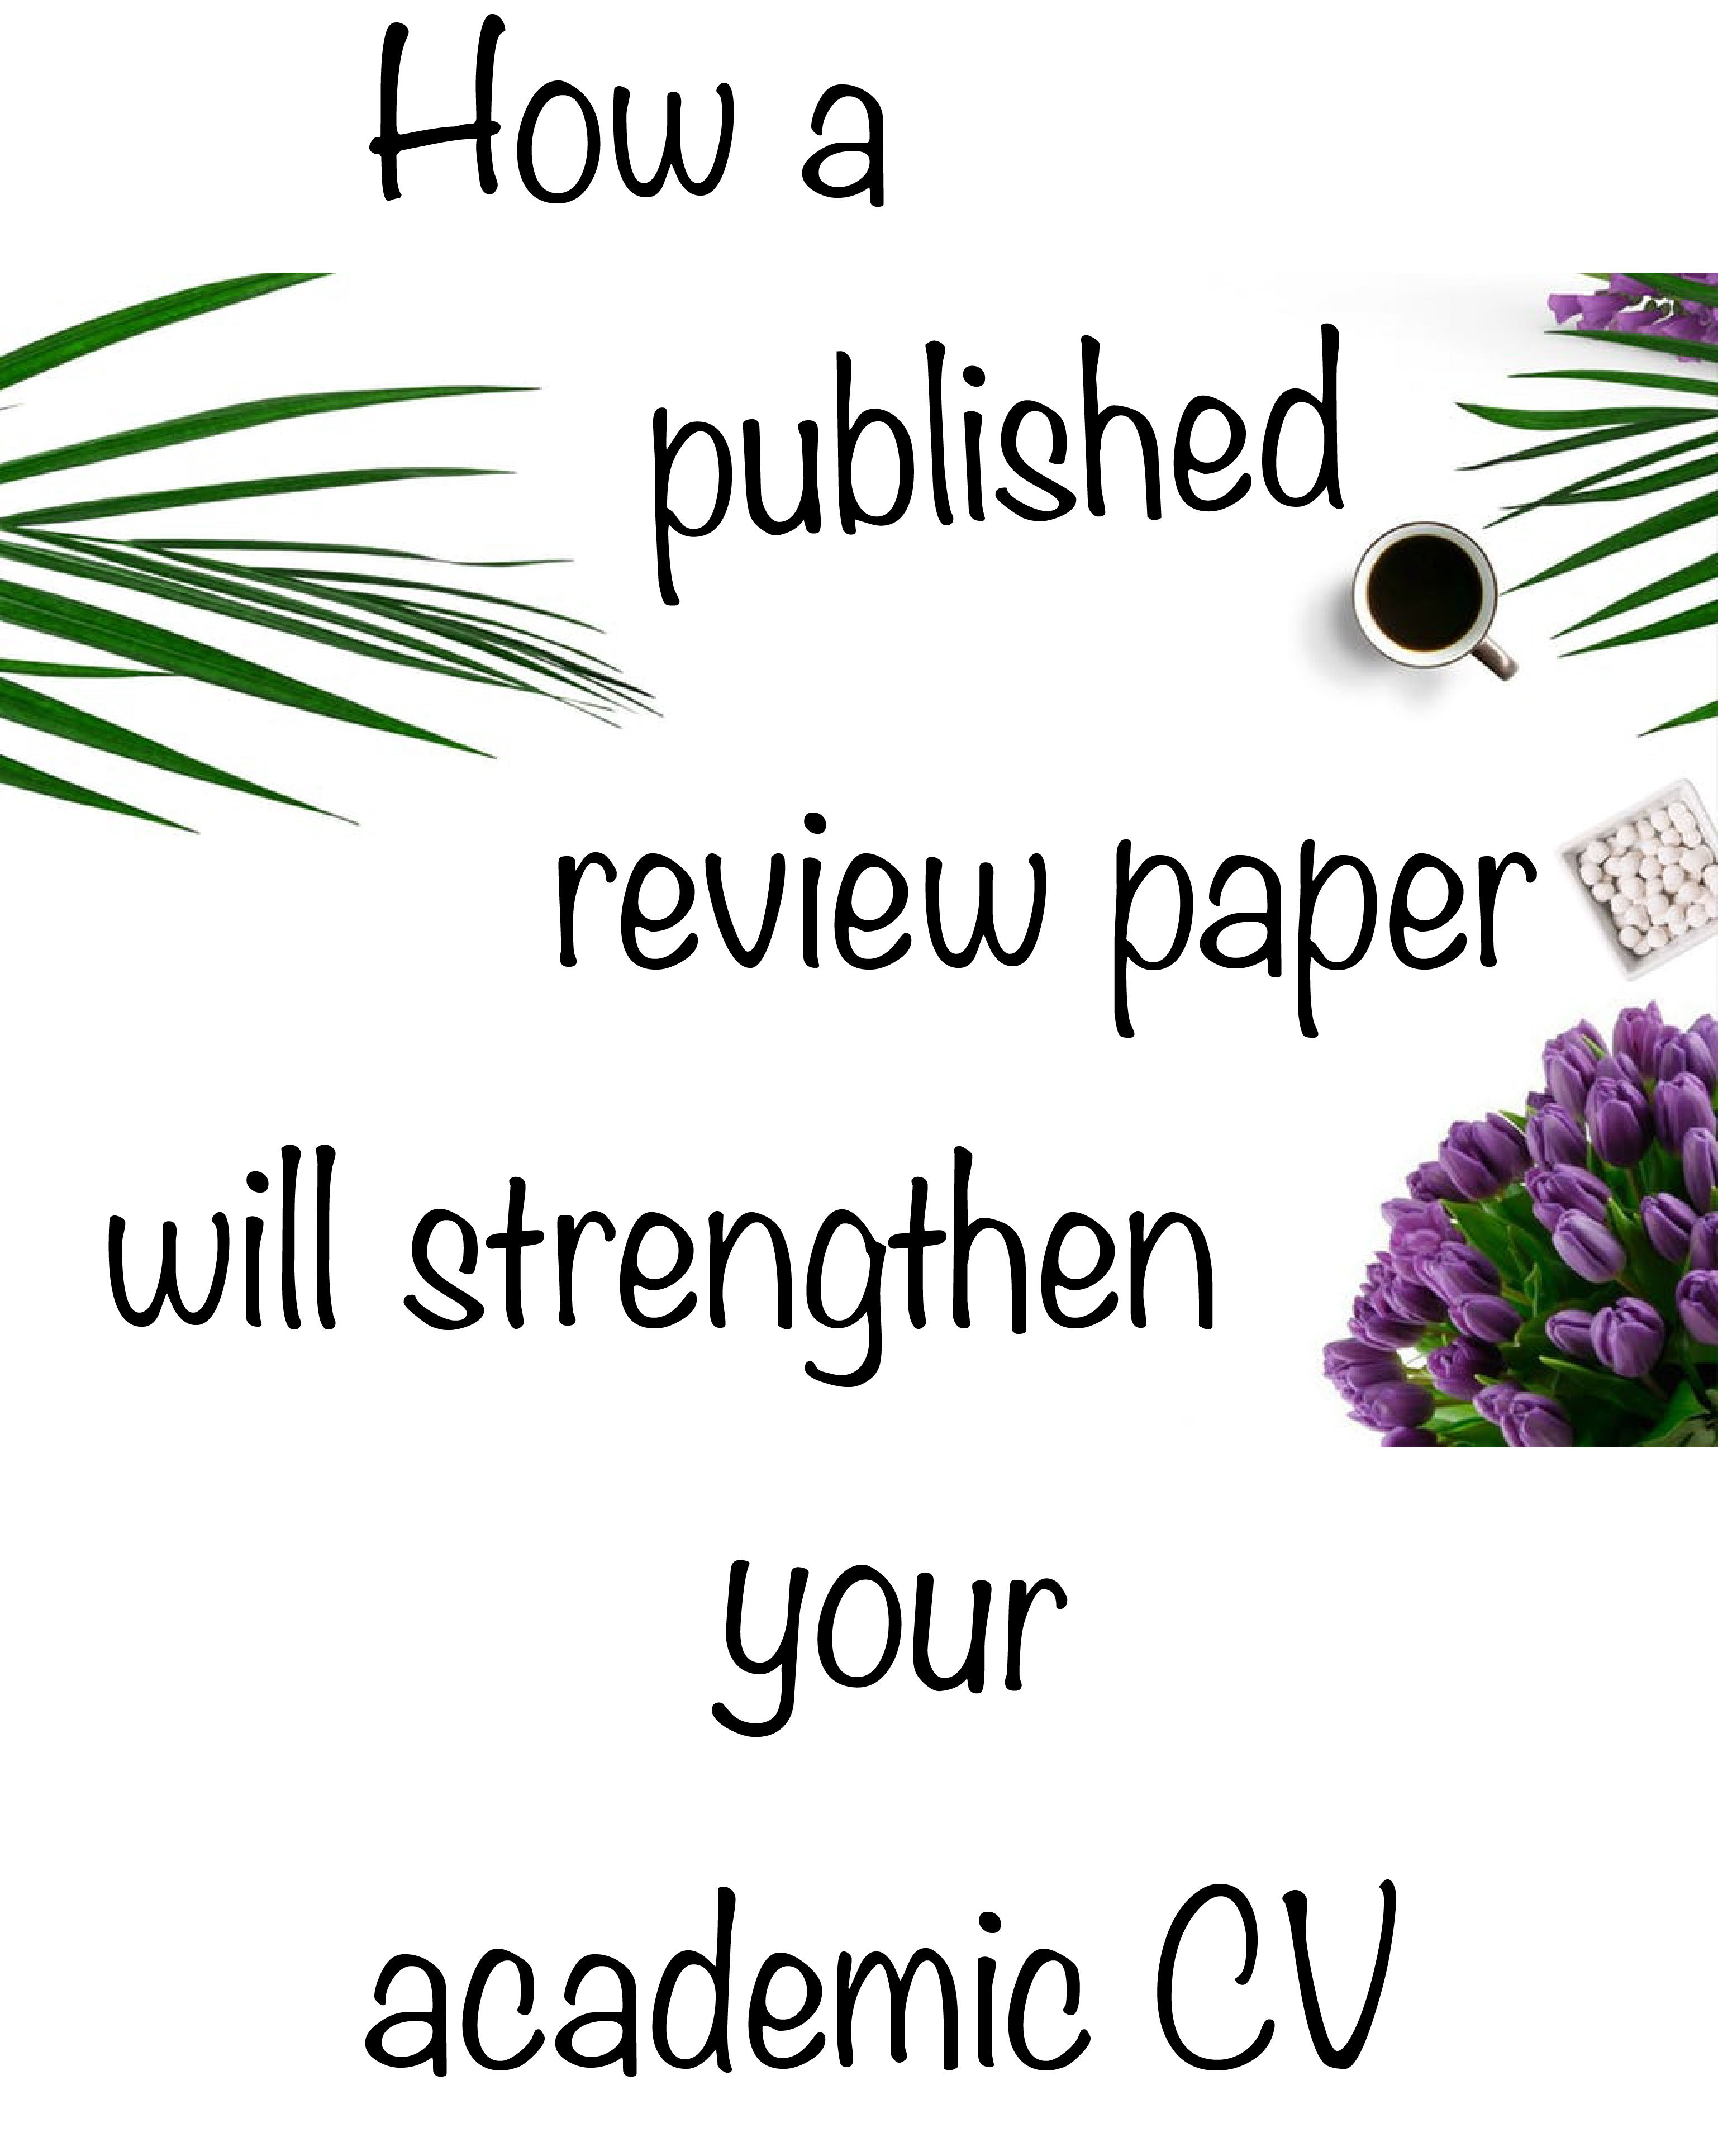 In This Article I Explain What An Academic Review Paper Is And How A Published Review Paper Will Strengthen You Academic Writing Dissertation Writing Phd Life